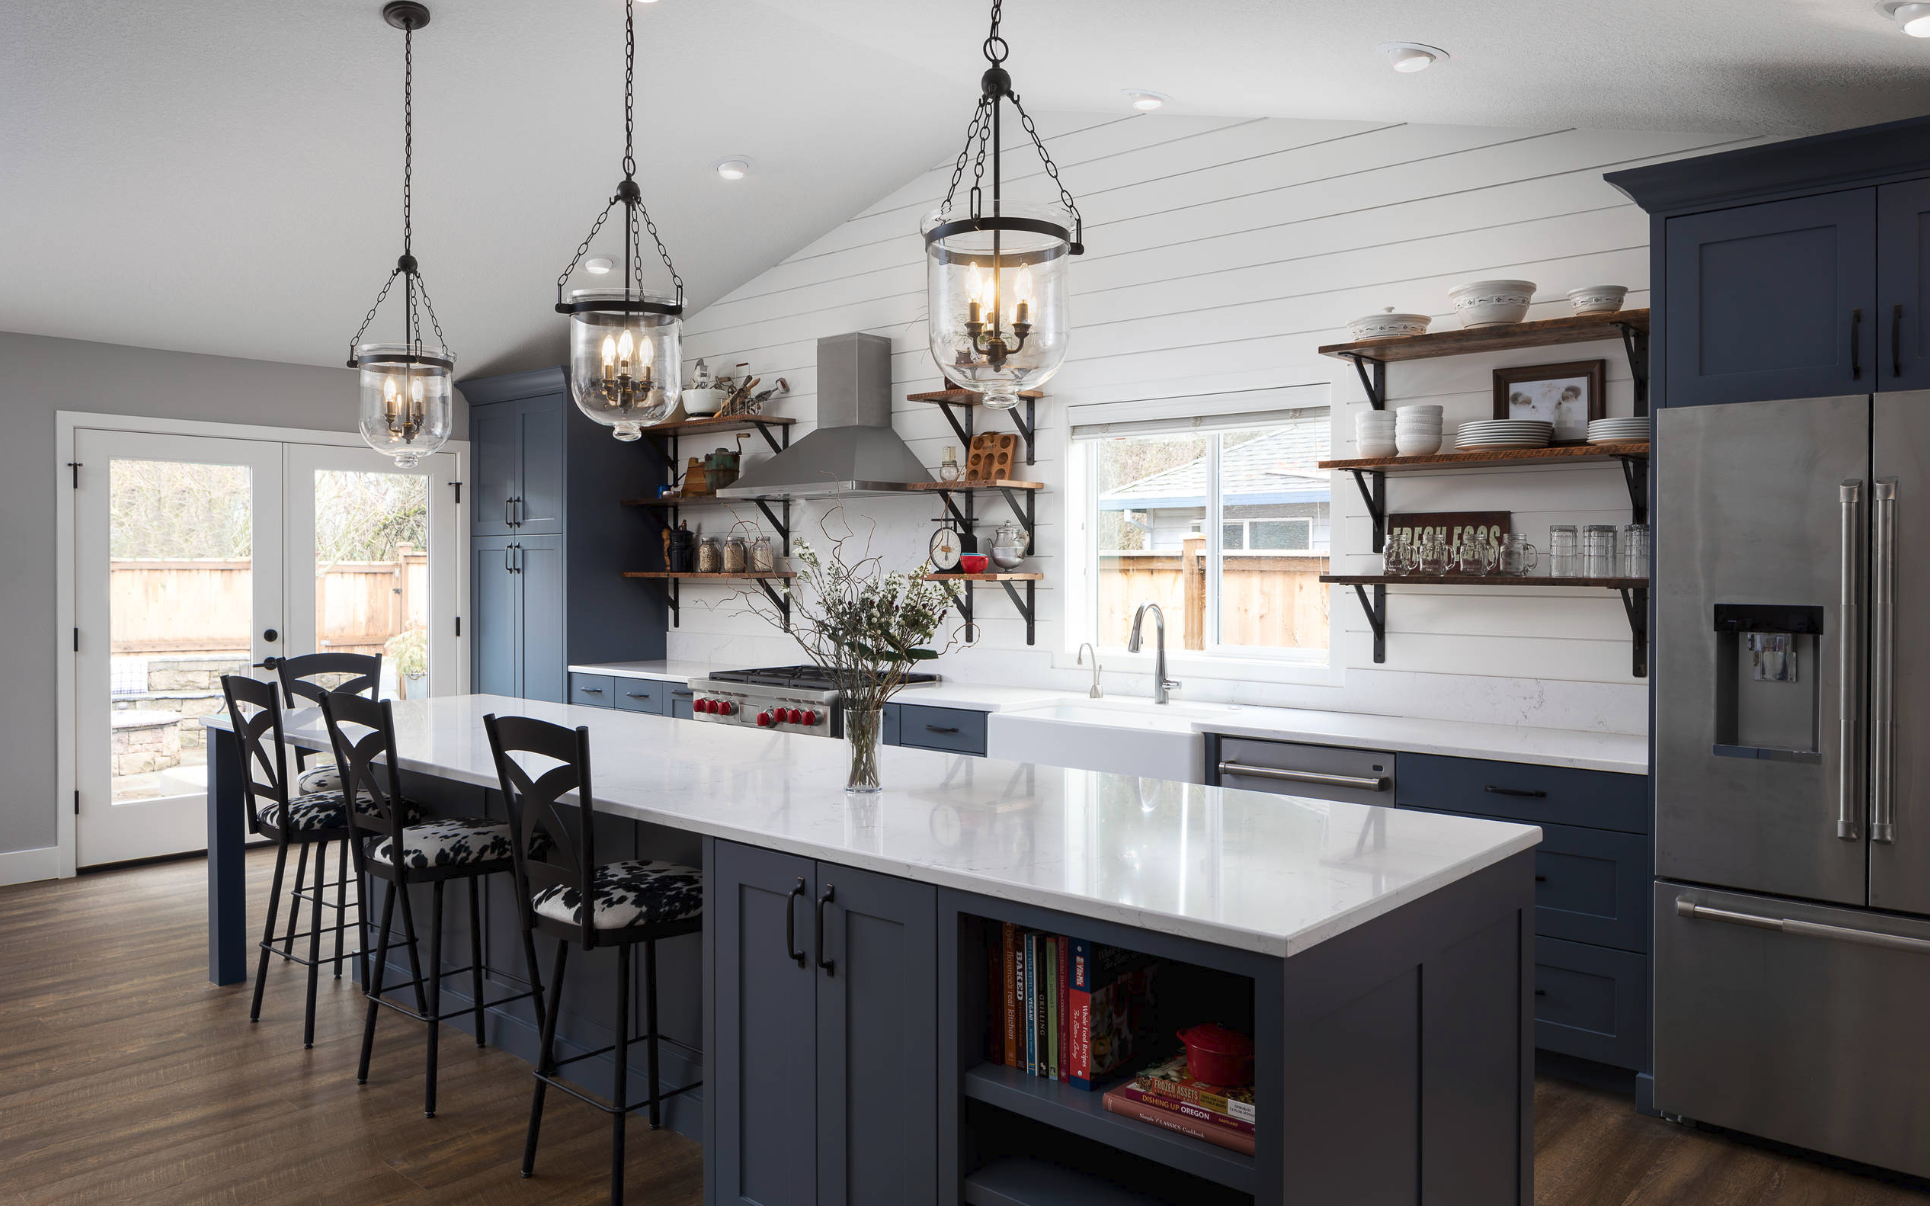 Kitchen Design Ideas What Is My Style ~ Here are modern farmhouse kitchen ideas to inspire you